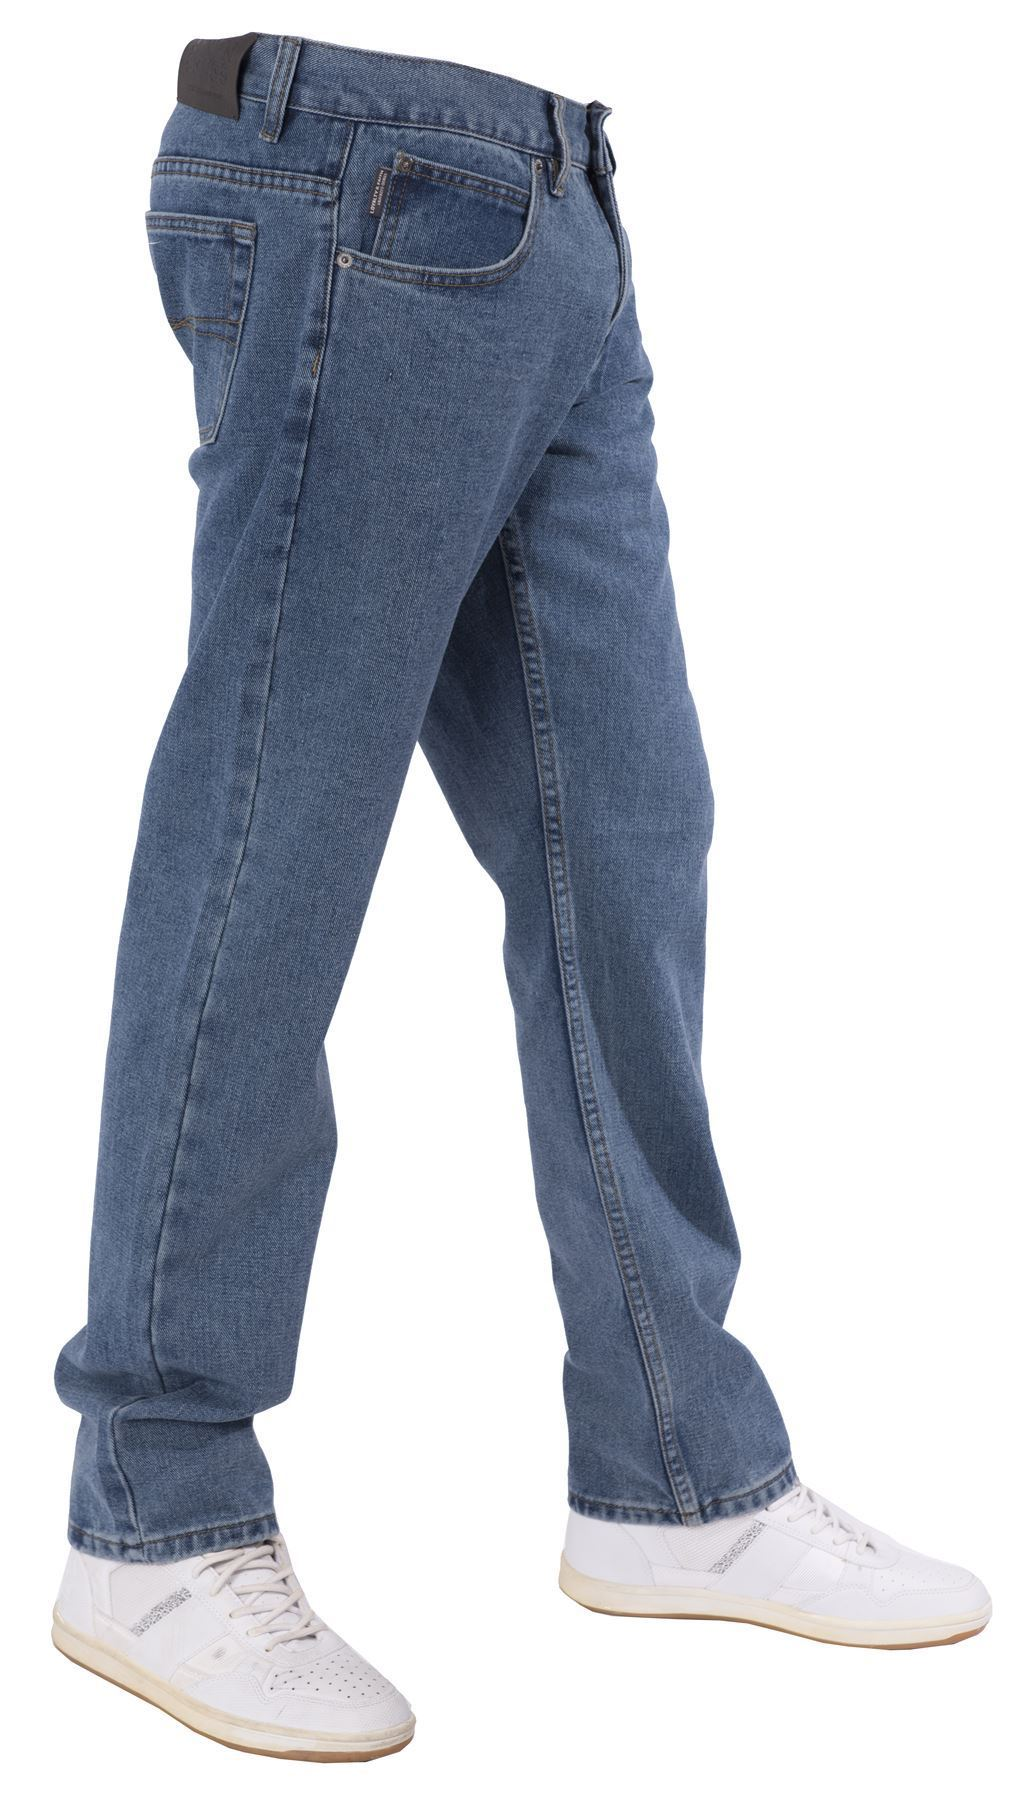 FREE SHIPPING AVAILABLE! Shop downiloadojg.gq and save on At Waist Jeans.